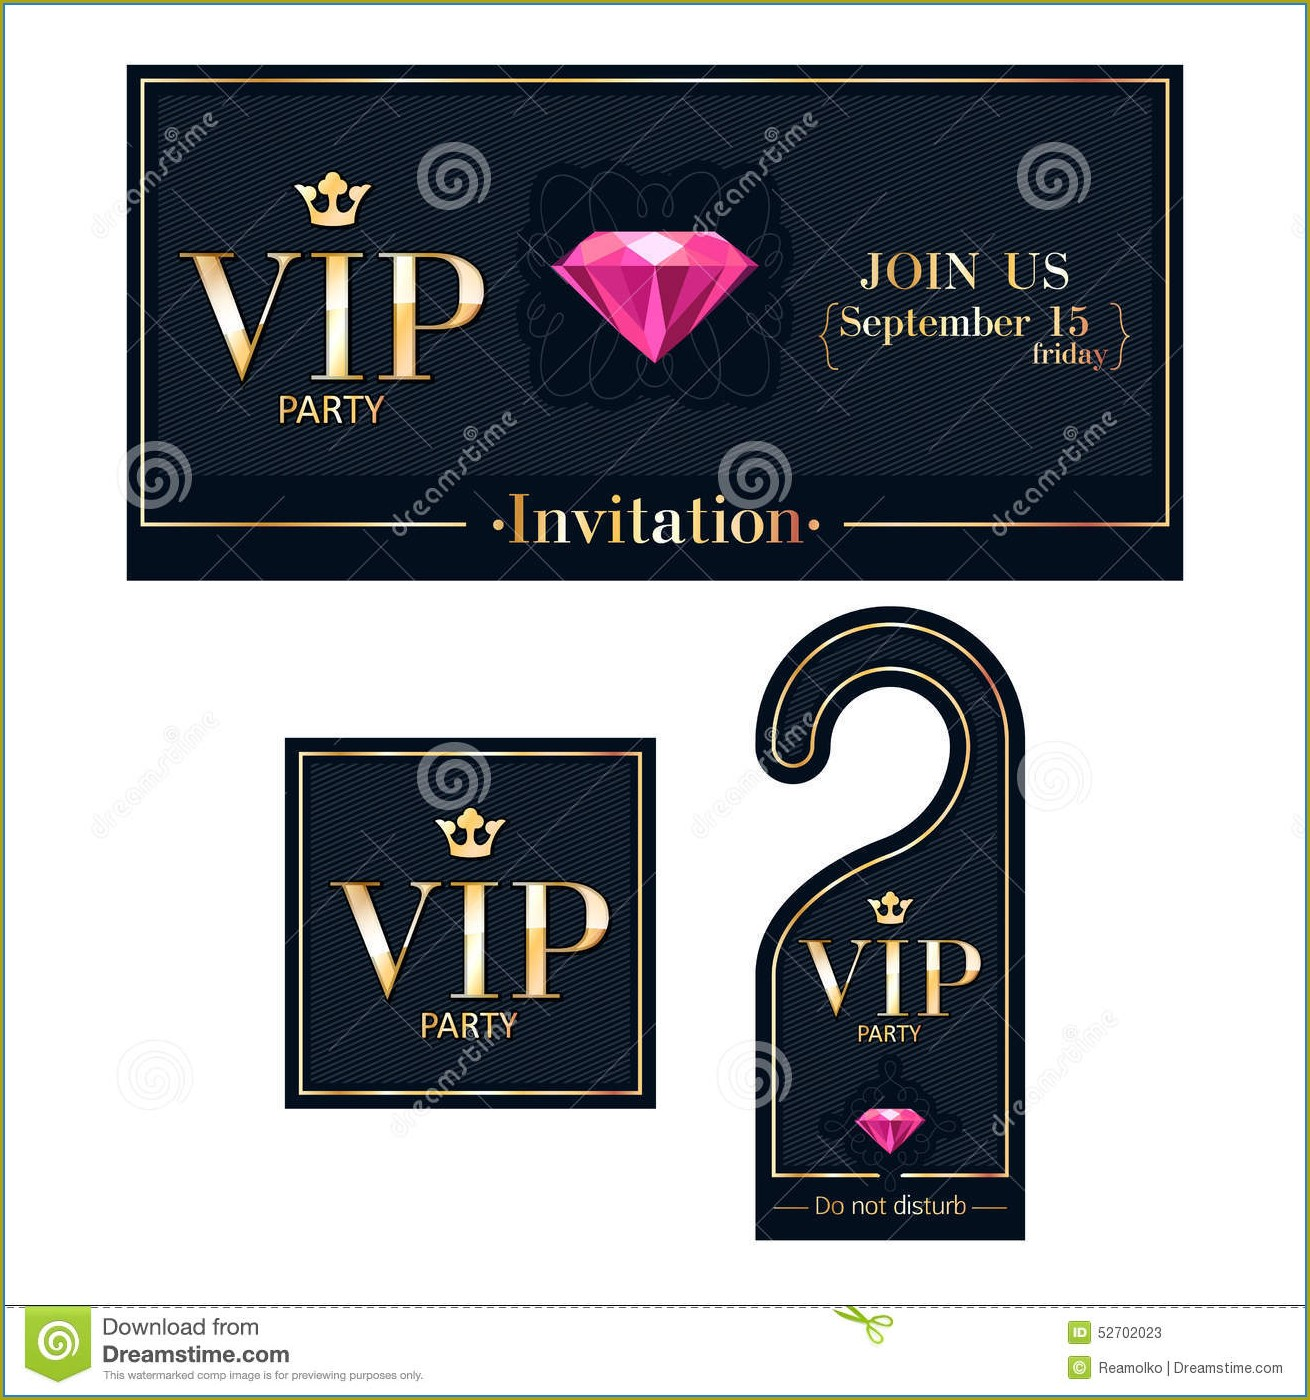 Downloadable Vip Invitation Template Free